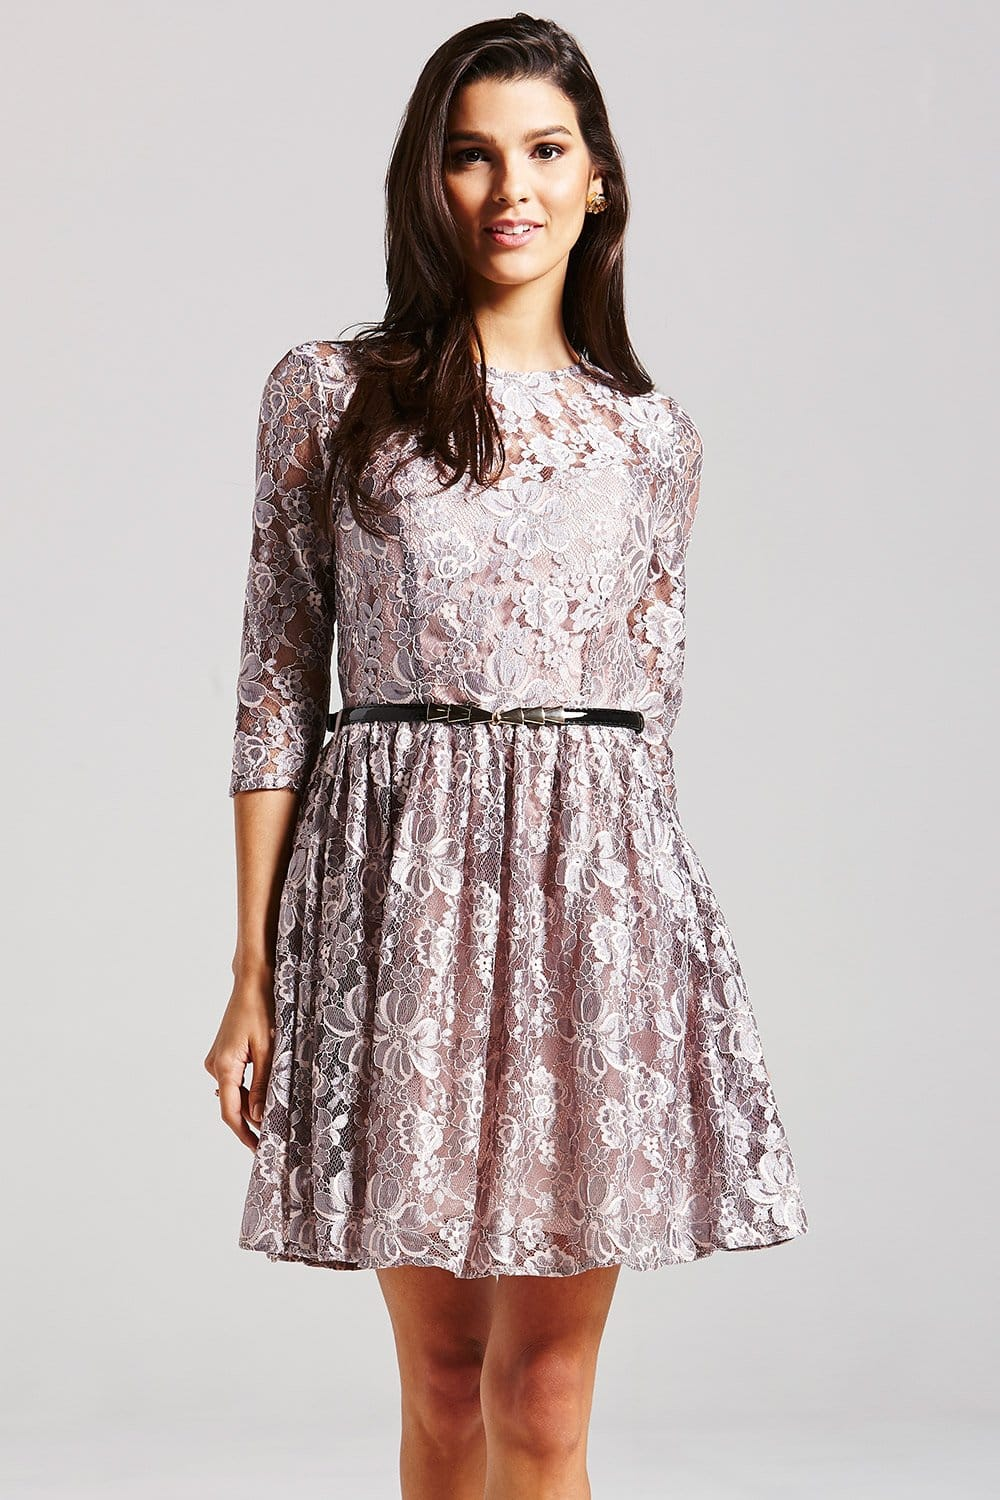 Skater Dresses Get your fit-and-flare on with boohoo's collection of skater dresses - work lace and long sleeve for when you're getting all dolled up or choose classic .